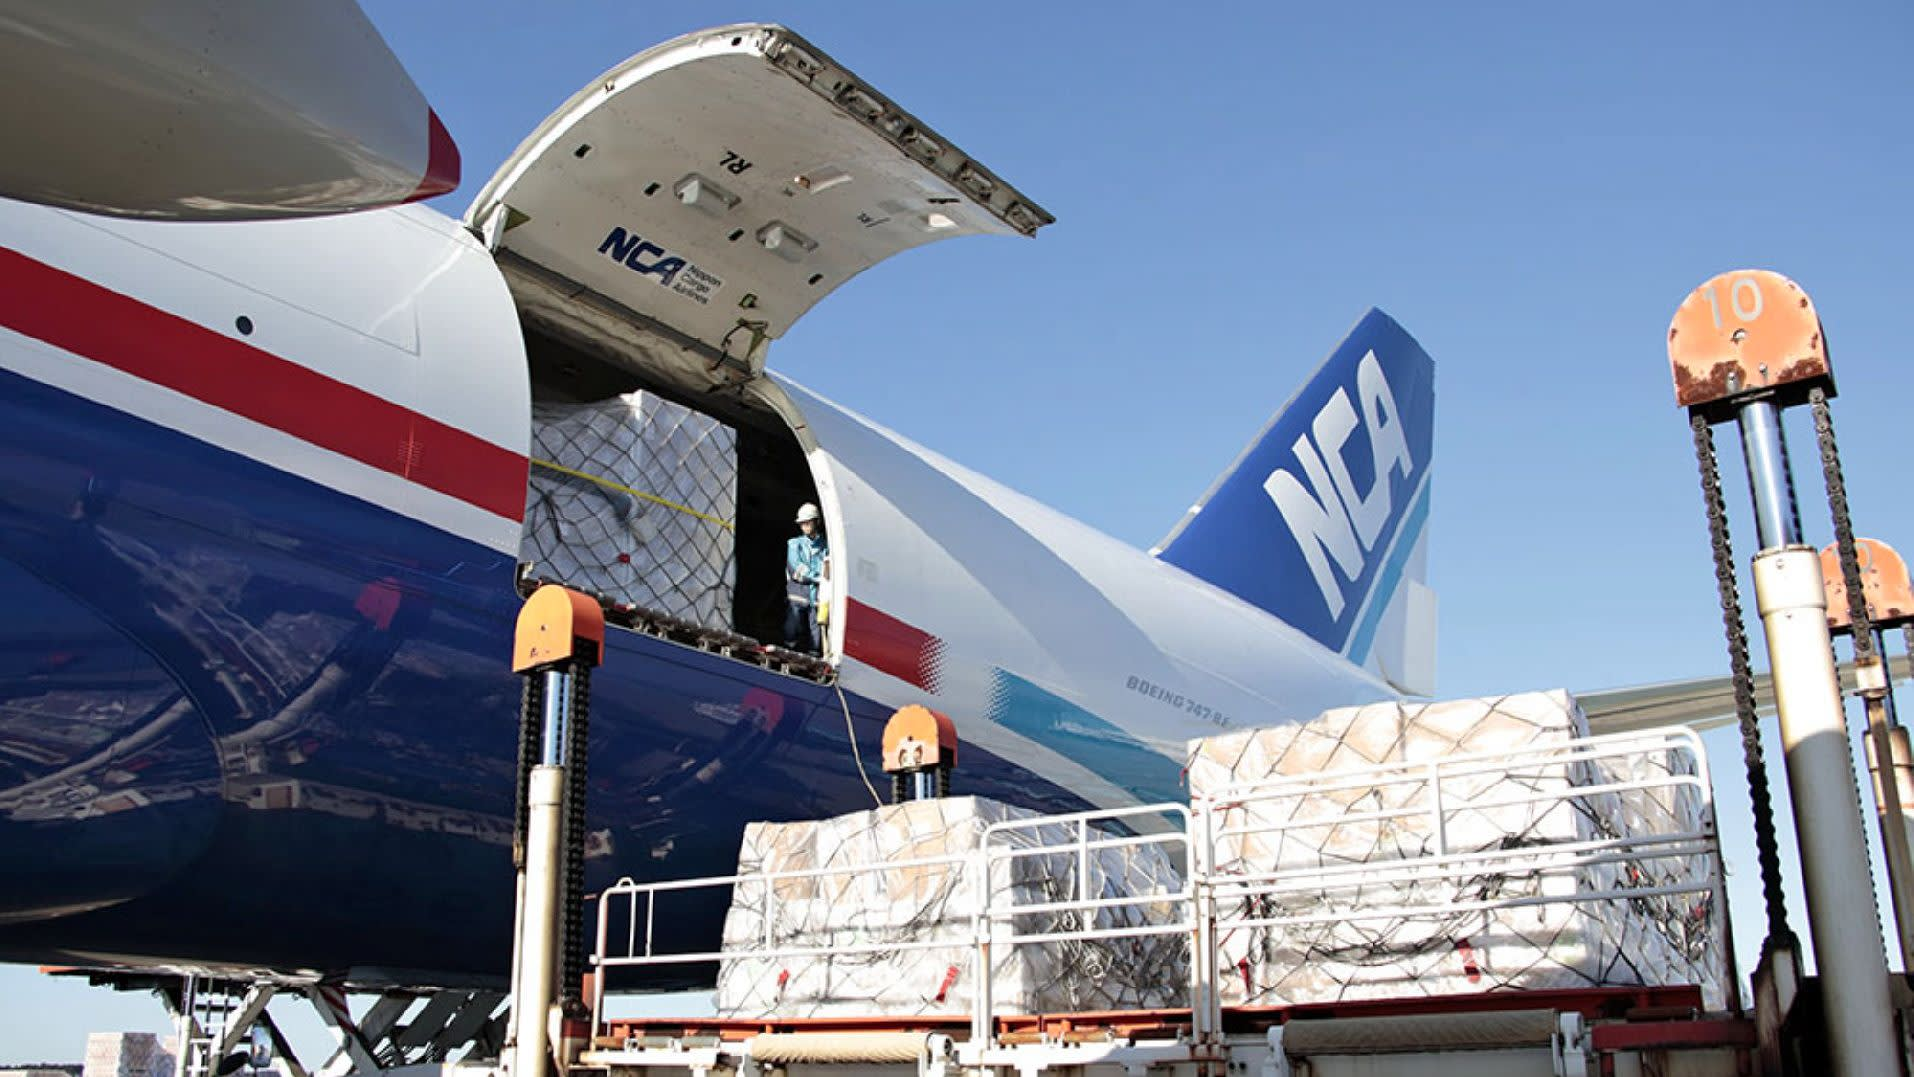 An inaccurate servicing record prompted Nippon Cargo Airlines to suspend all flights for at least a week while it combs through its logs.